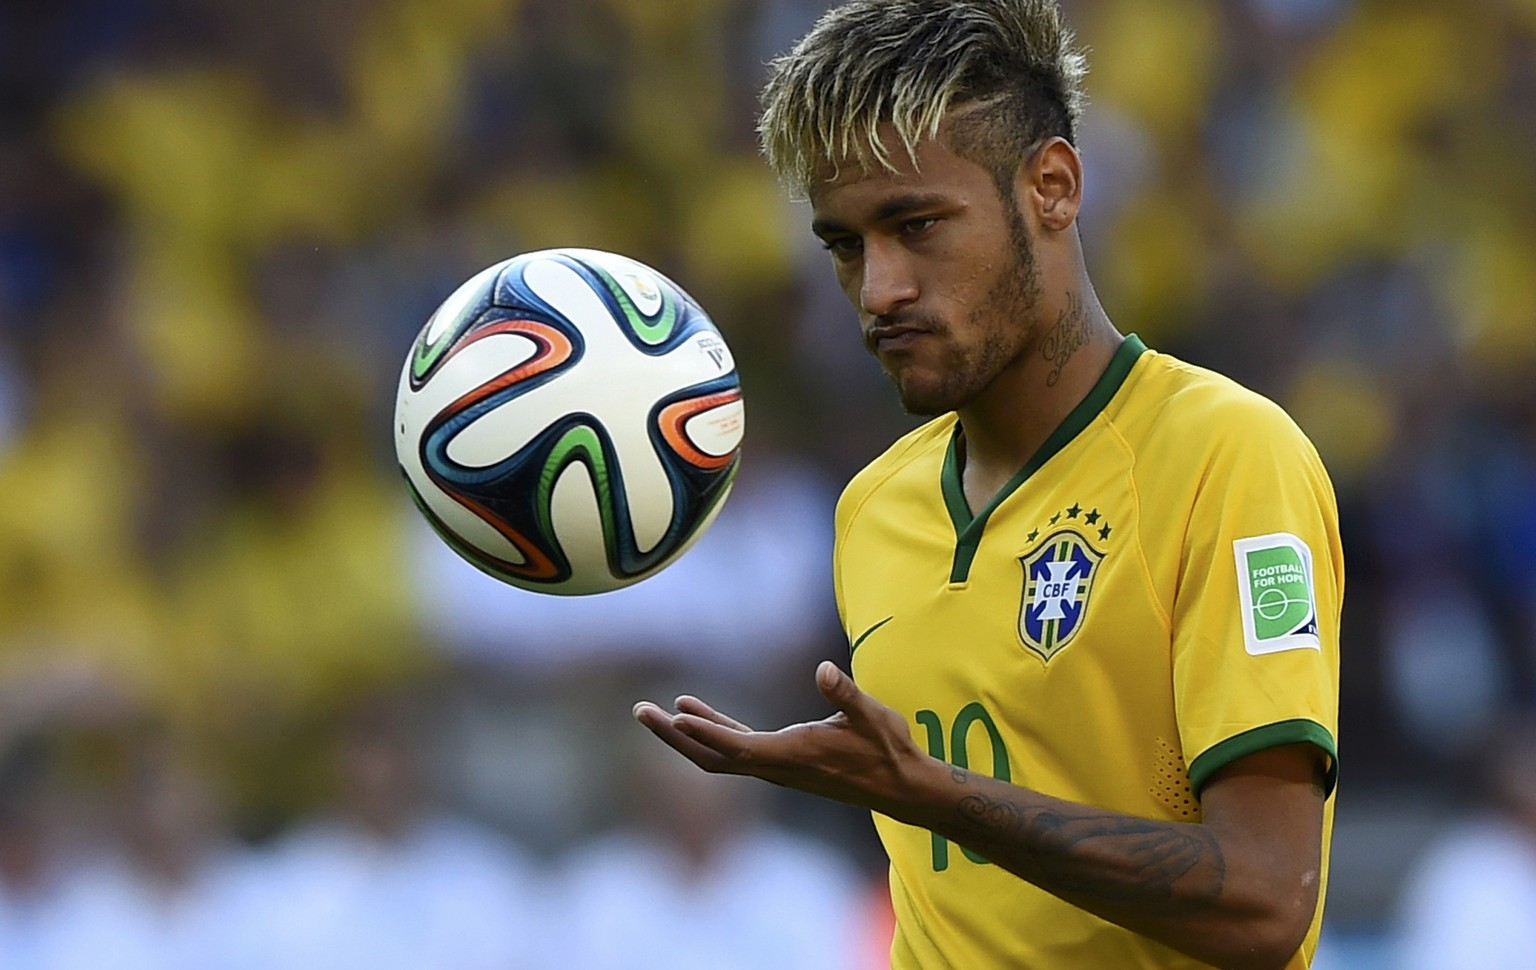 Brazil's Neymar prepares for his penalty during the penalty shootout between Brazil and Chile in their 2014 World Cup round of 16 game at the Mineirao stadium in Belo Horizonte June 28, 2014.                REUTERS/Dylan Martinez (BRAZIL  - Tags: SOCCER SPORT WORLD CUP TPX IMAGES OF THE DAY)